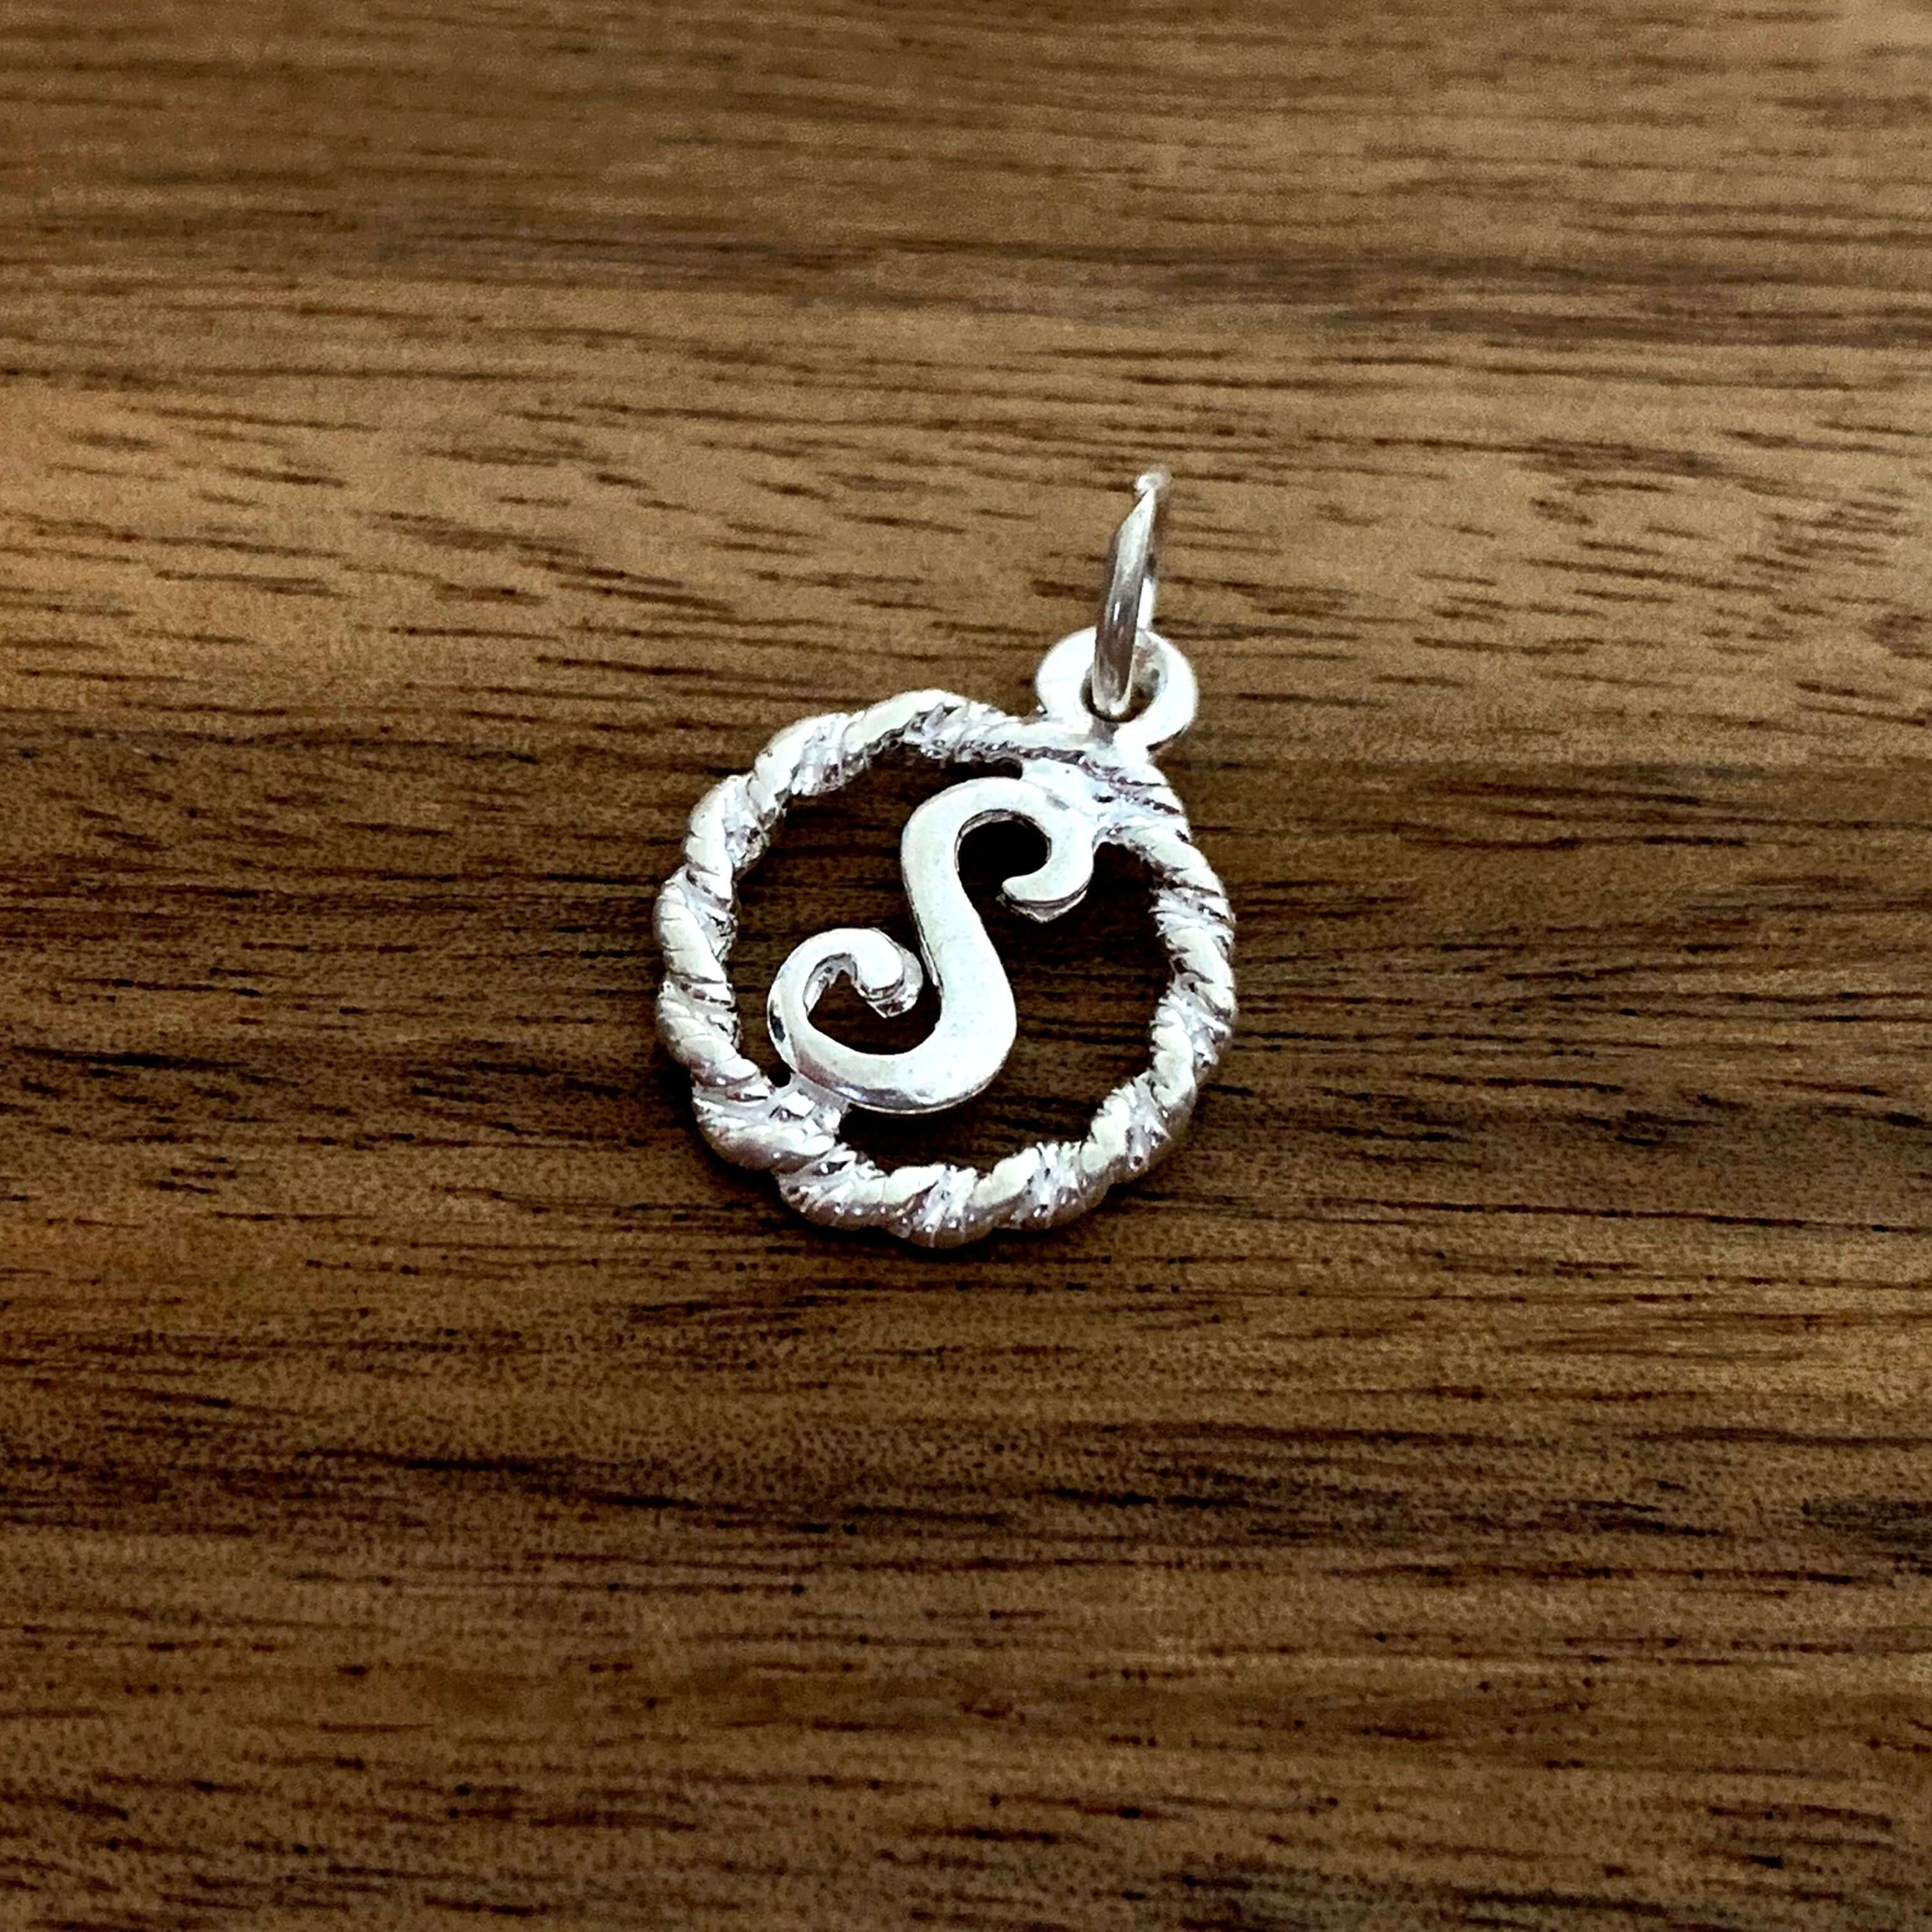 S initial charm